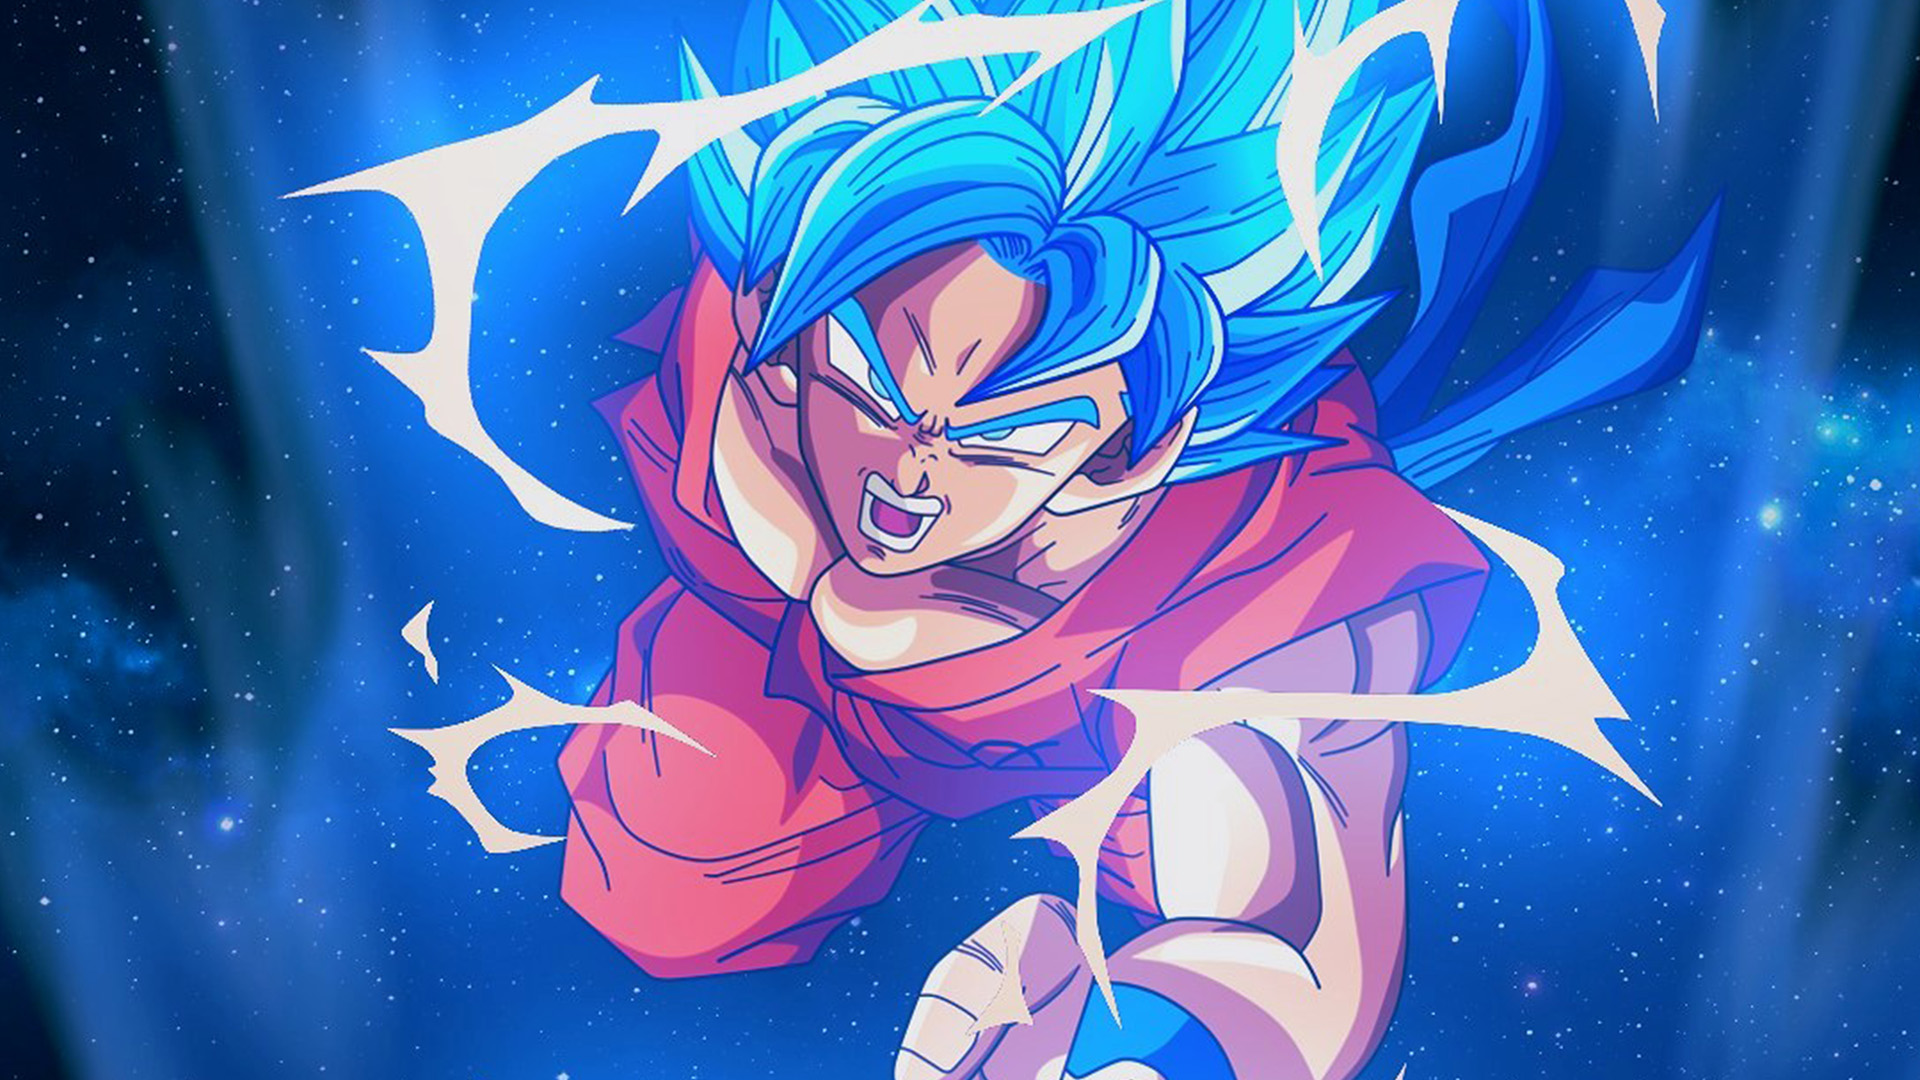 Fall Disney Iphone Wallpaper Bc54 Dragonball Goku Blue Art Illustration Anime Wallpaper